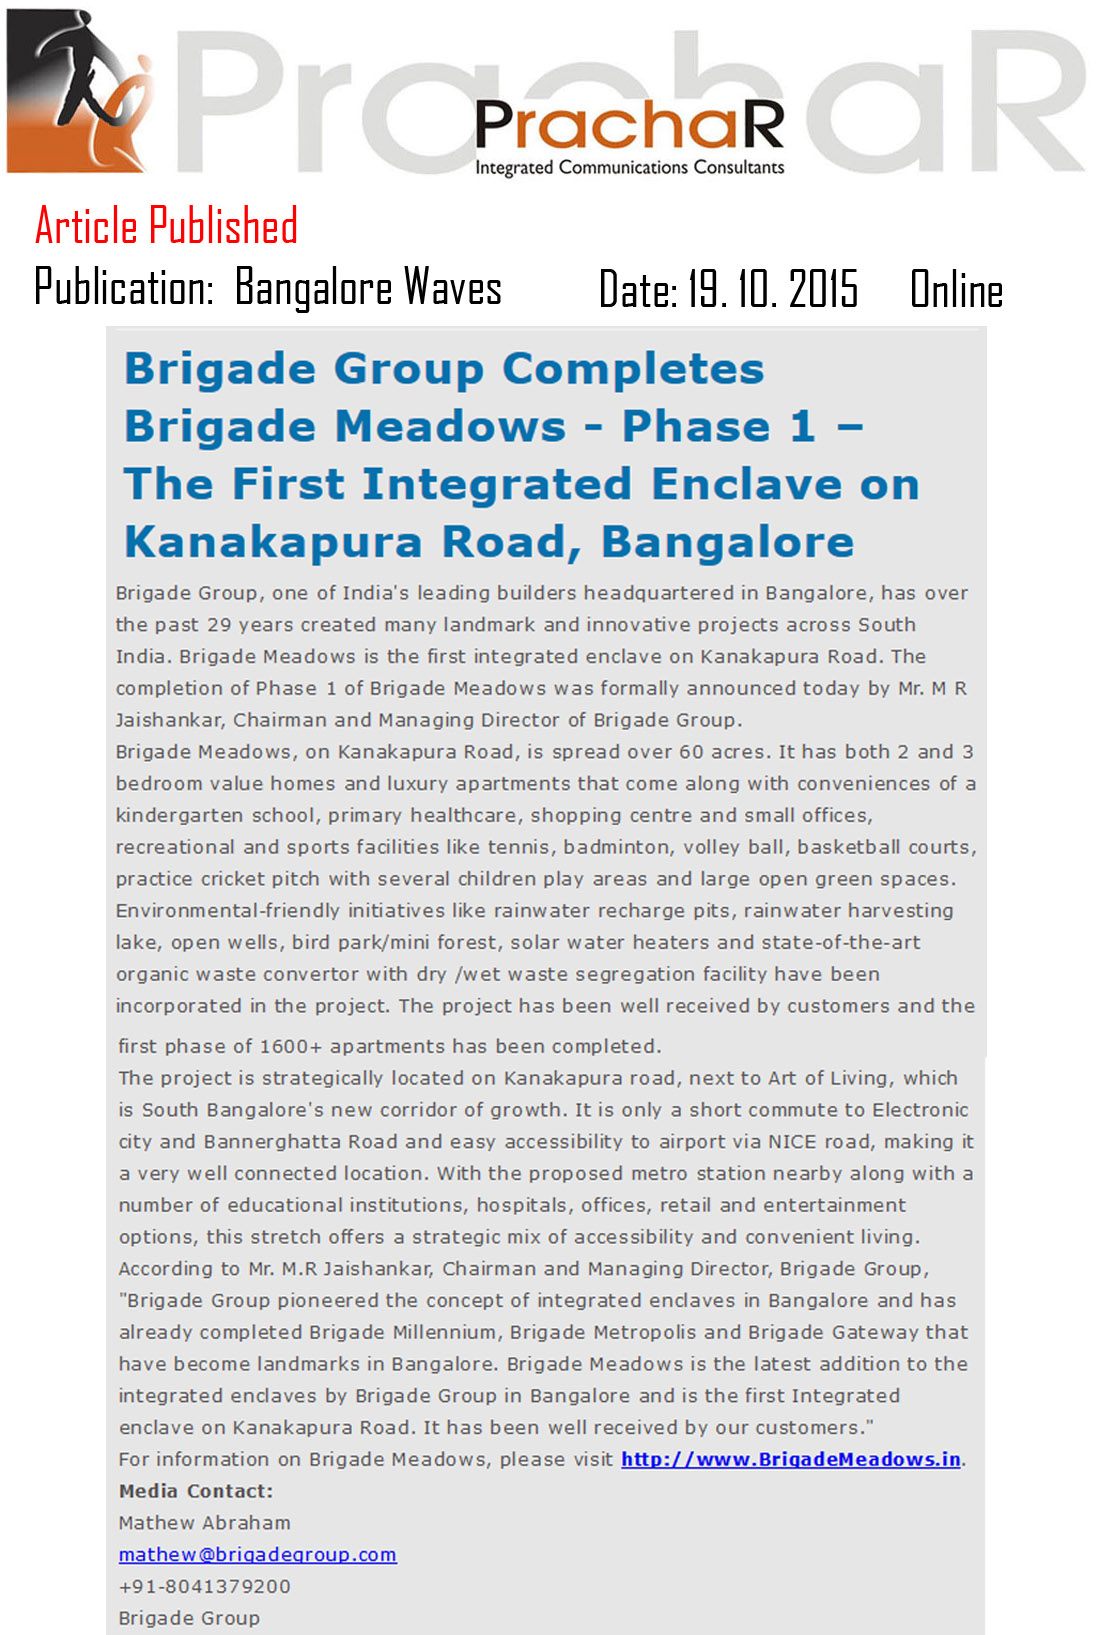 Brigade Group completes Brigade meadows – Phase 1 –The first integrated enclave on Kanakapura road, Bangalore - Bangalore Waves